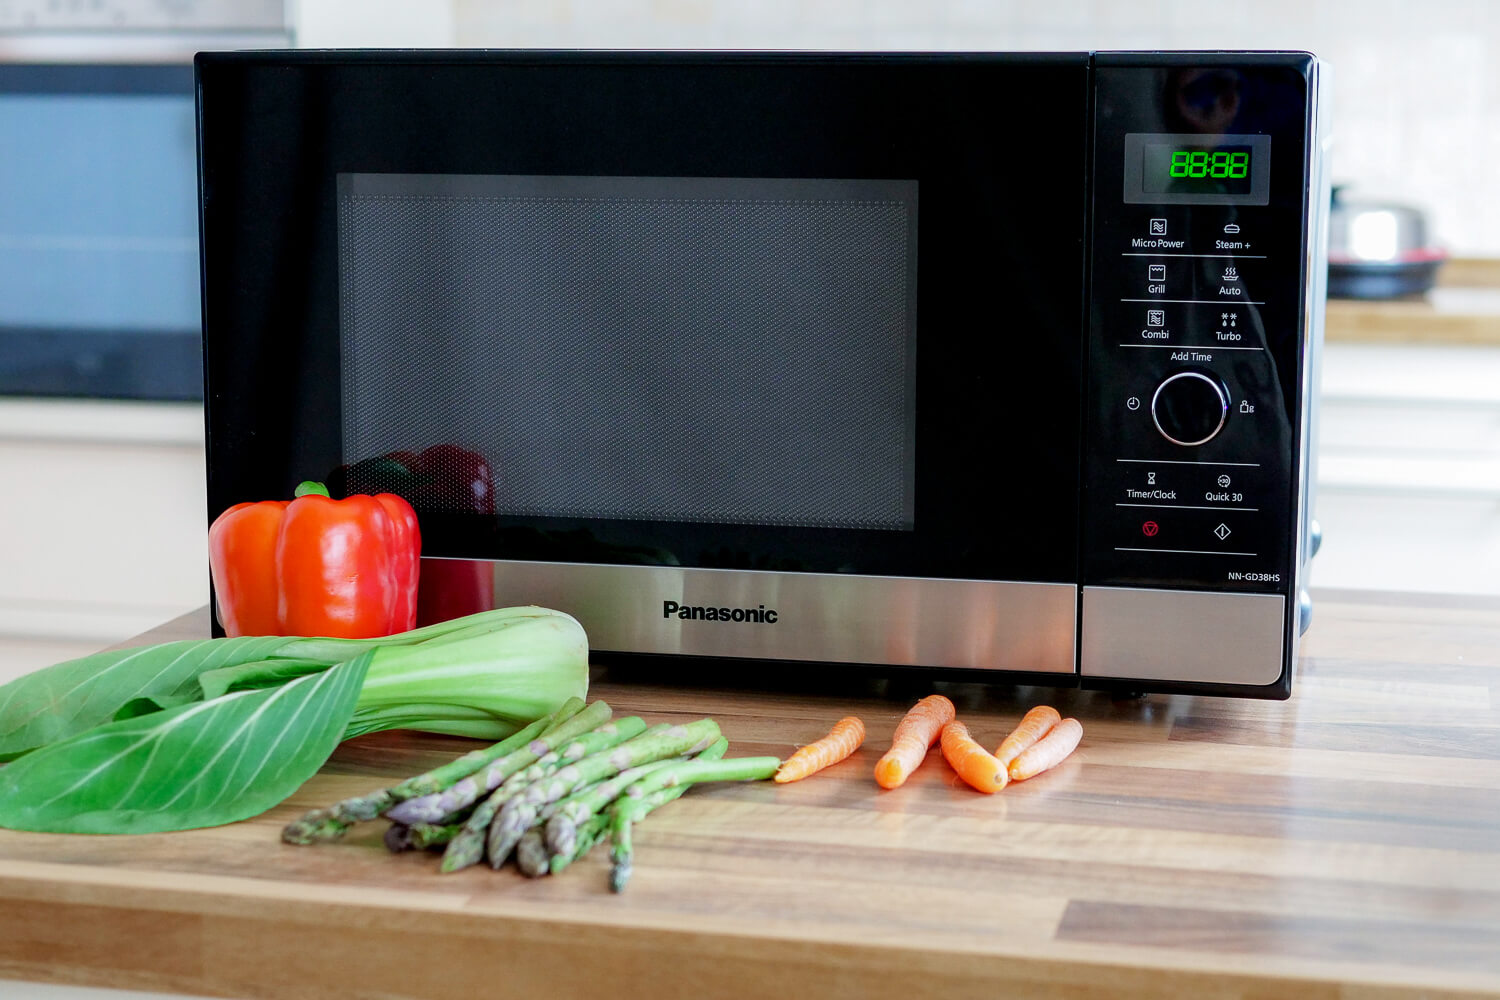 Panasonic GD38 - Mikrowelle, Grill & Dampfgarer in einem